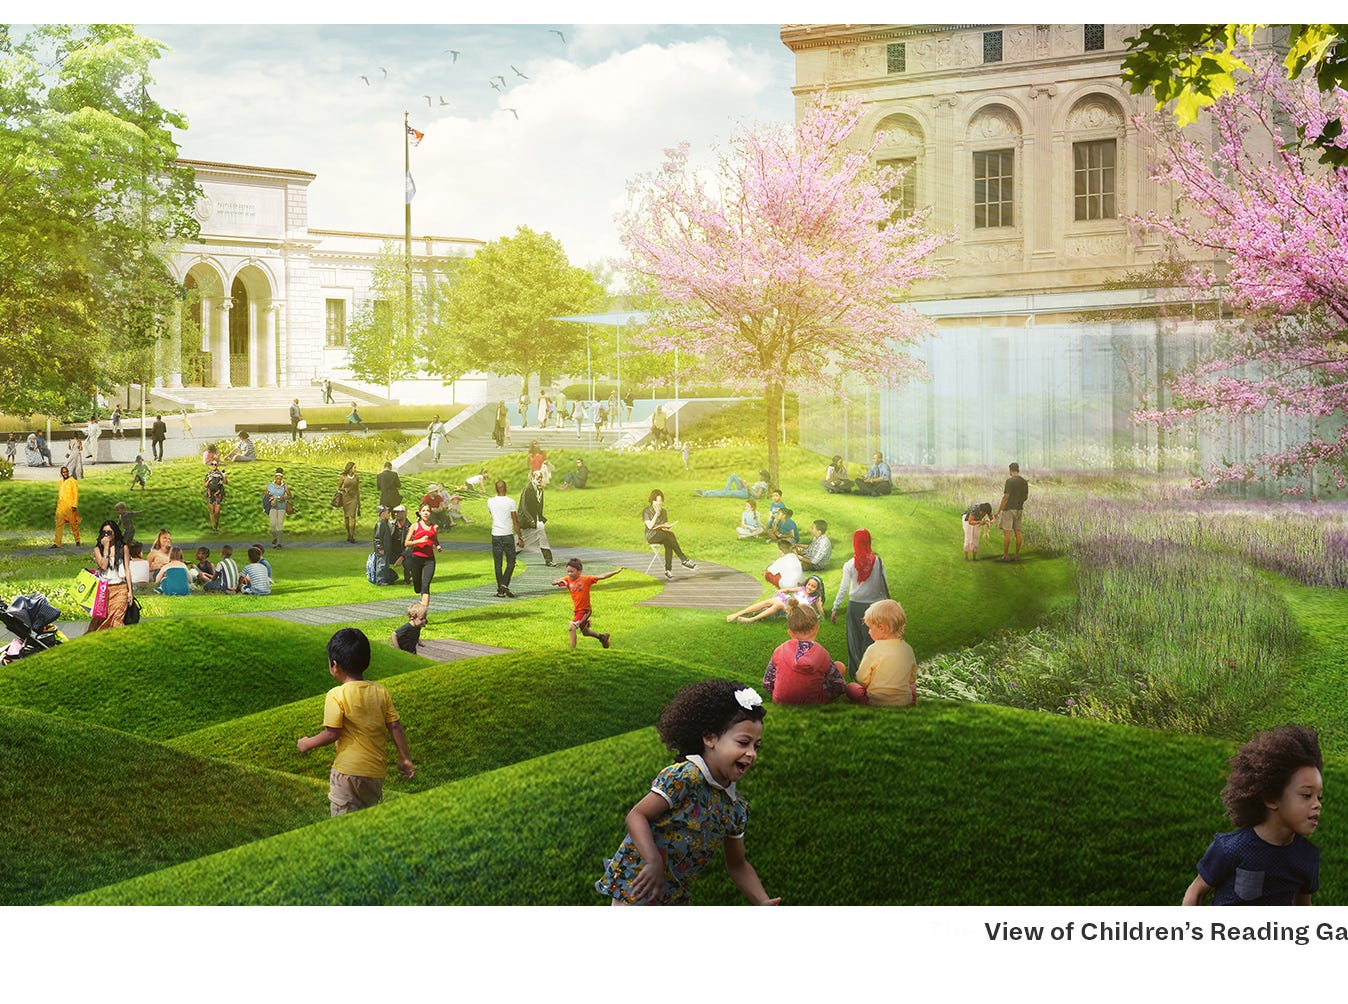 The finalist team Mikyoung Kim Design proposes a new green space intended for children outside the main branch of the Detroit Public Library.